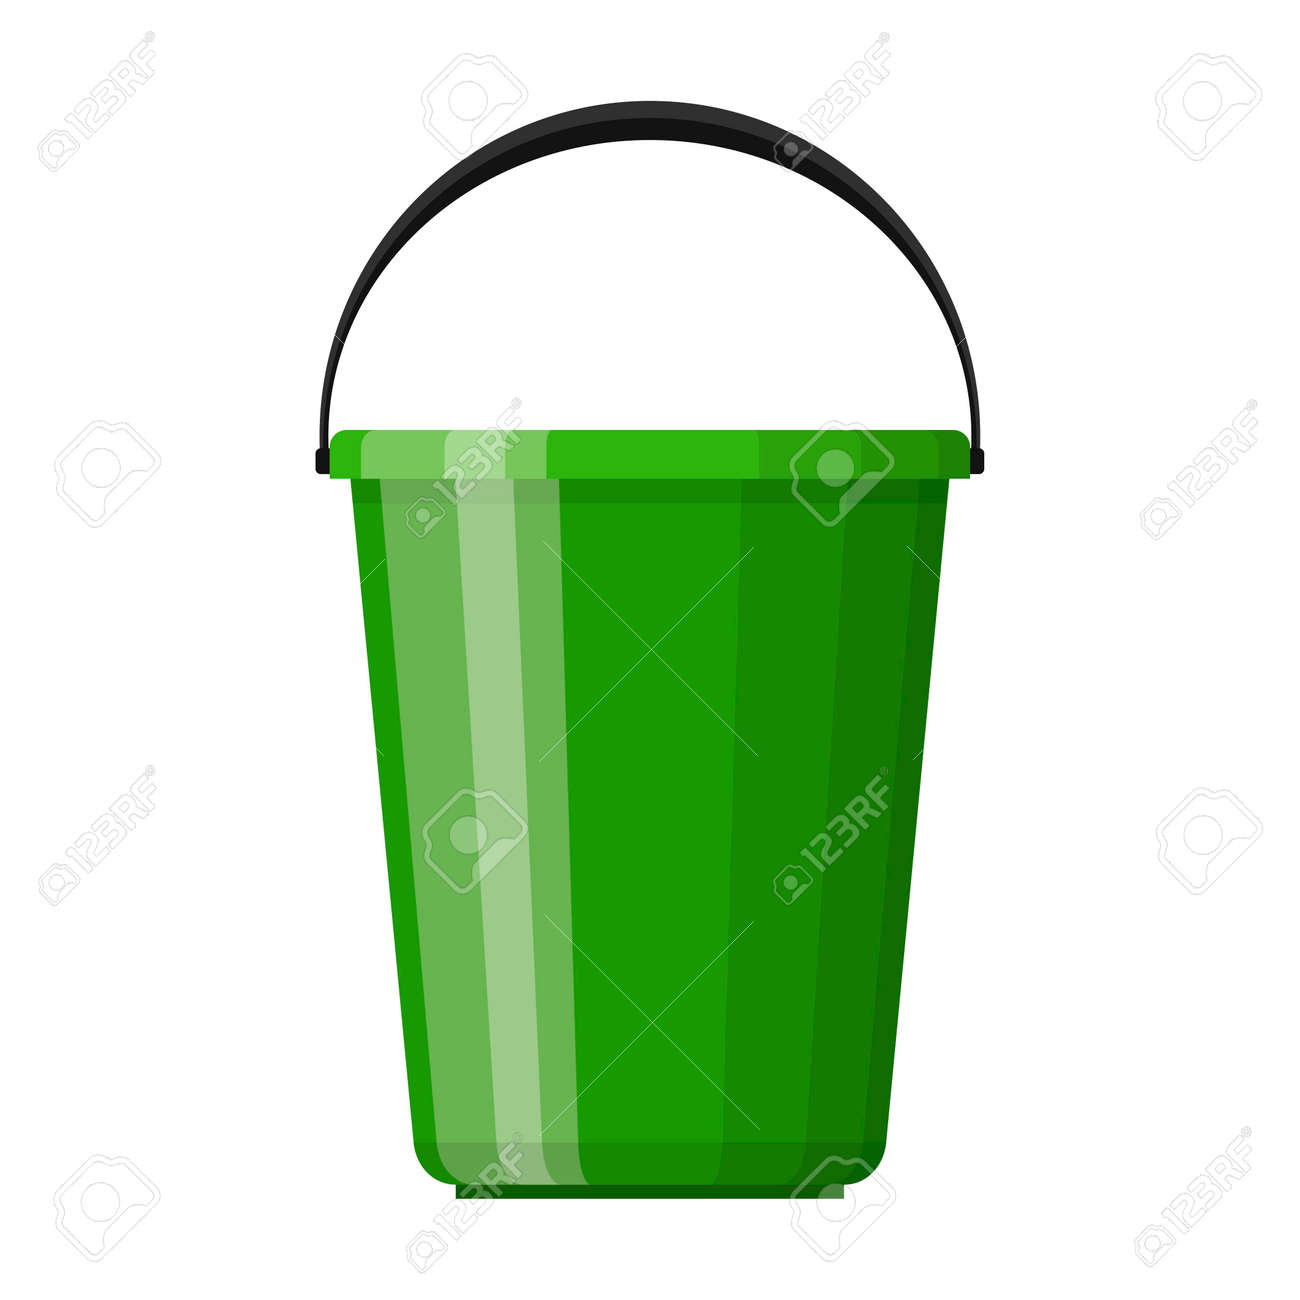 Green plastic bucket with handle in flat design isolated on white background. House cleaning and gardening equipment. Household accessories. Vector illustration - 162713195